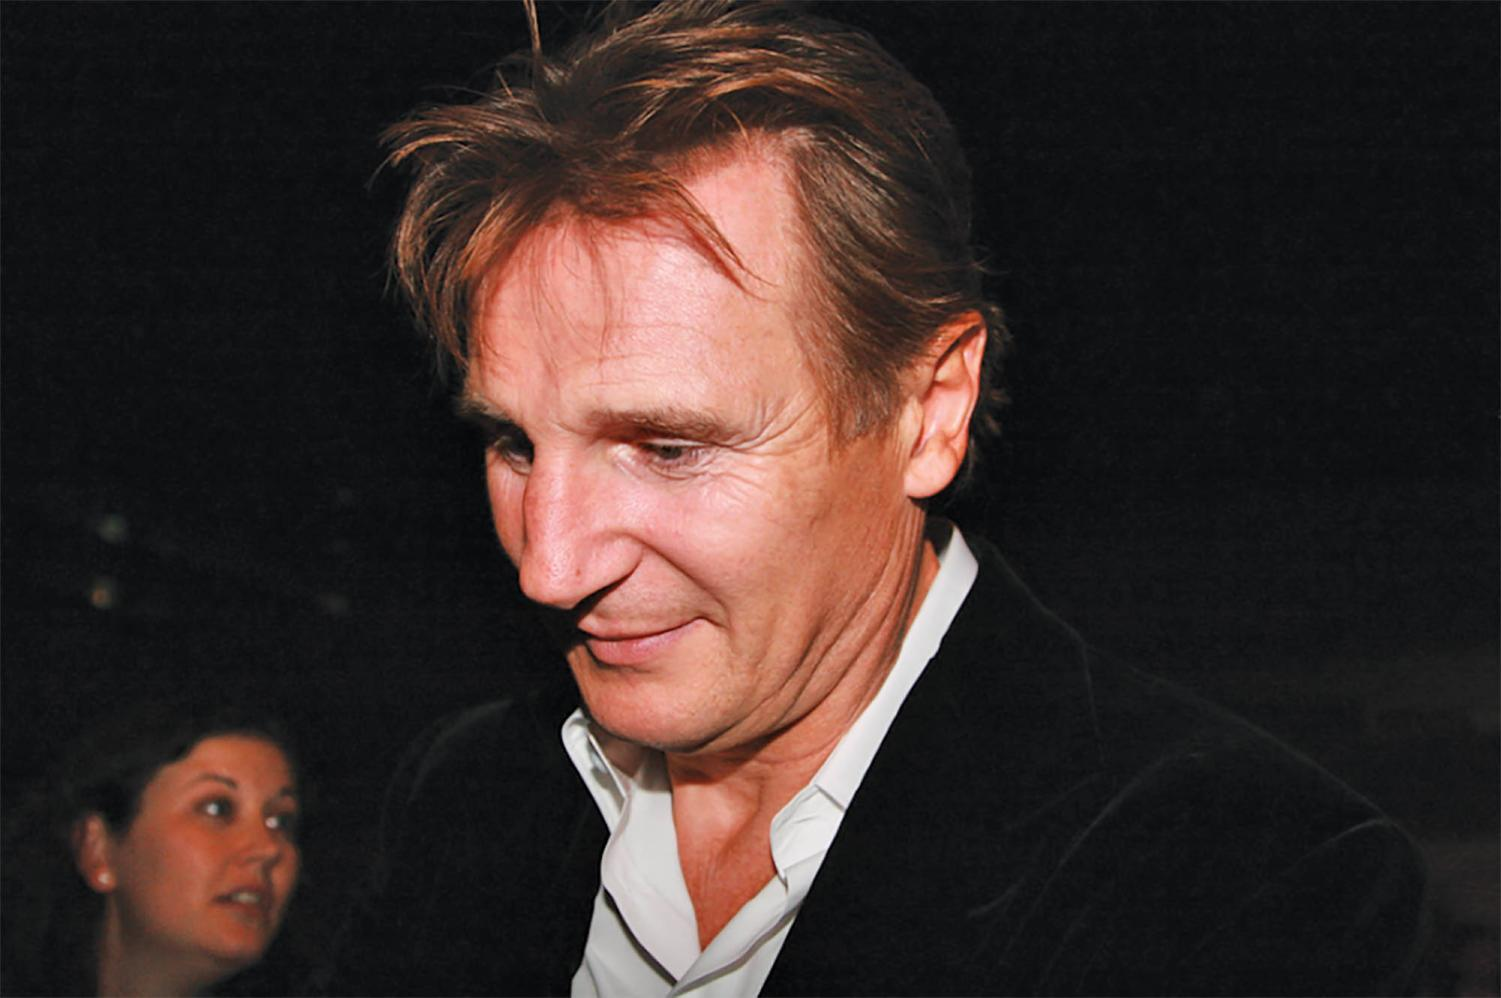 Neeson took two hour long power walks a day and talked through the issue with friends to help him.